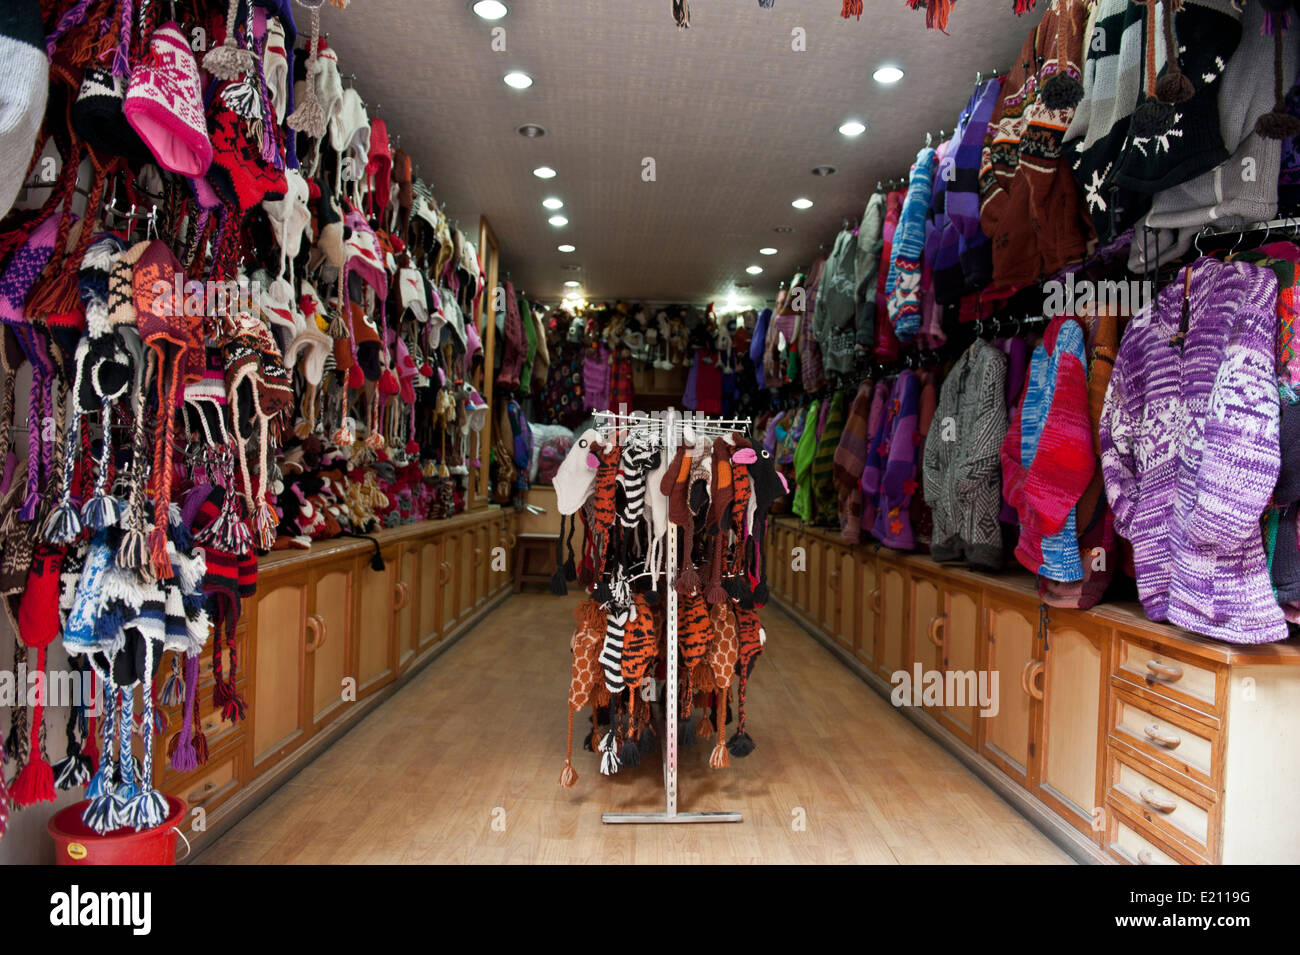 view inside a clothing and hat store in kathmandu nepal stock photo royalty free image. Black Bedroom Furniture Sets. Home Design Ideas